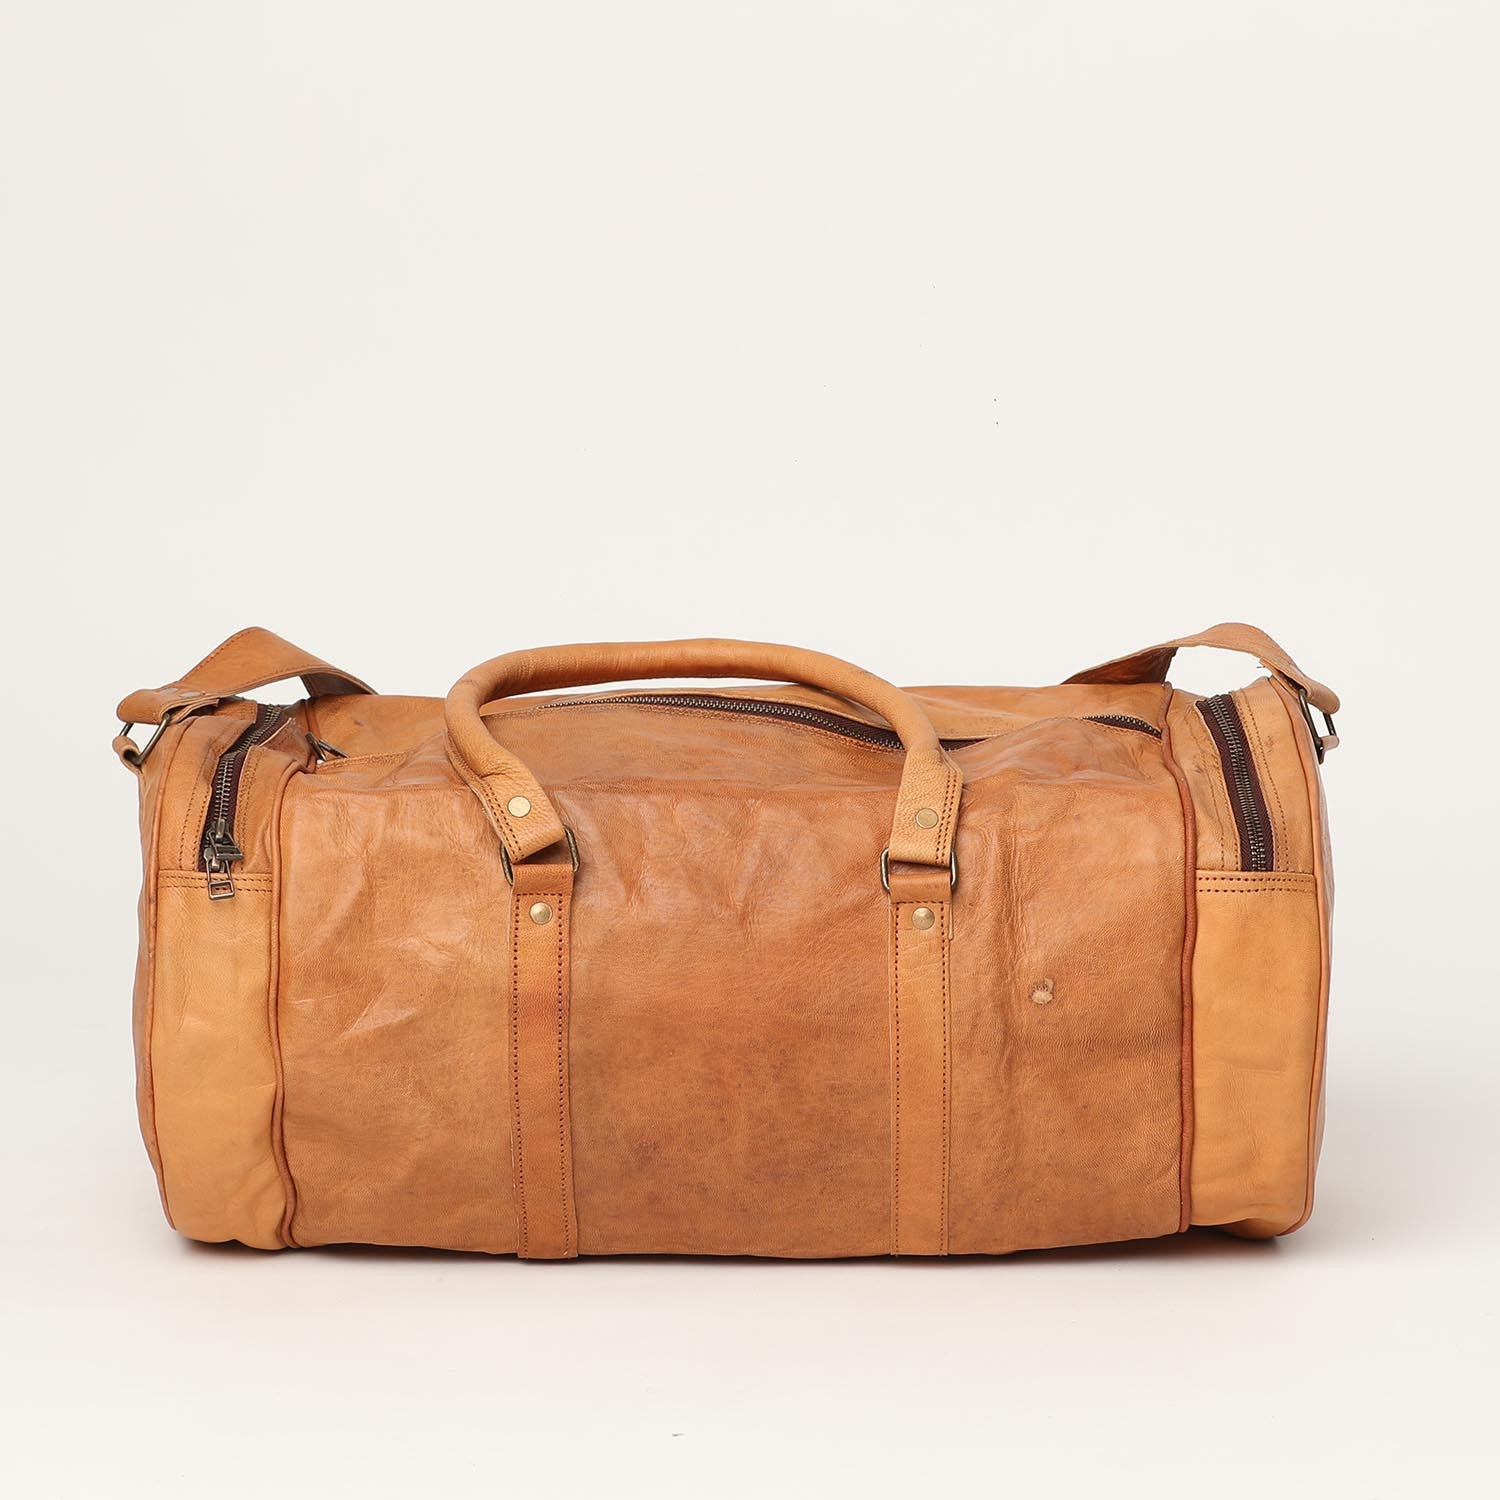 Travelling Bag Round - leather bags